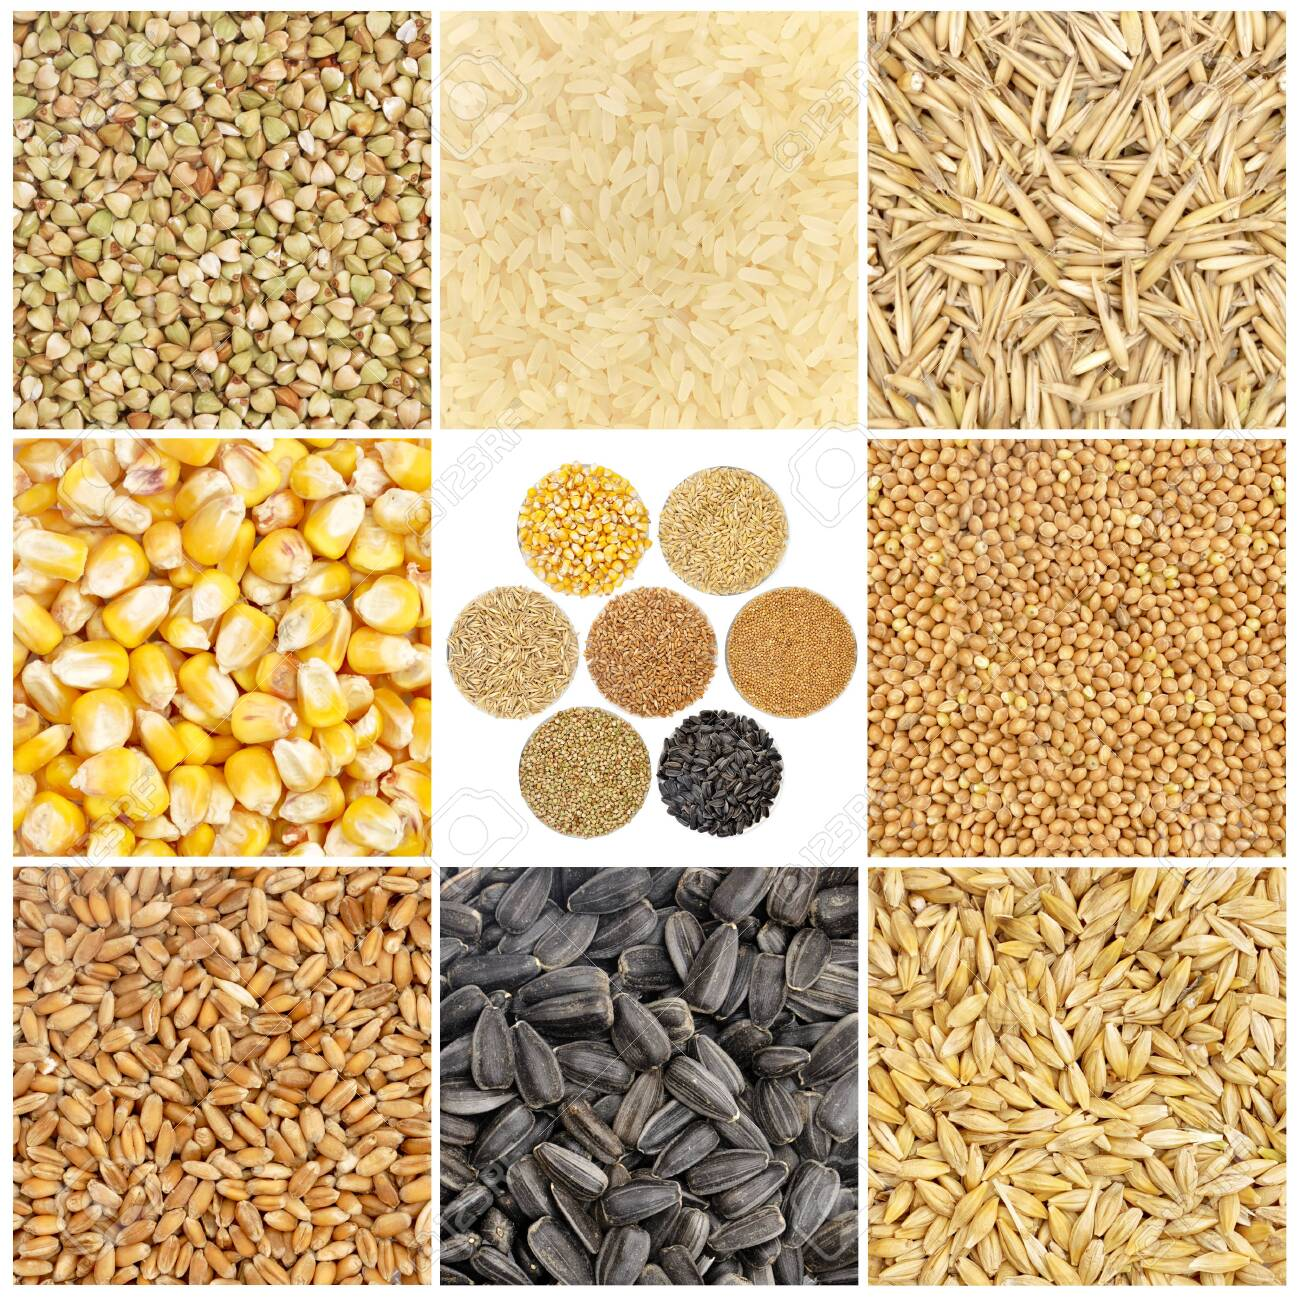 Cereals and basic food staple isolated on white background - 150229336